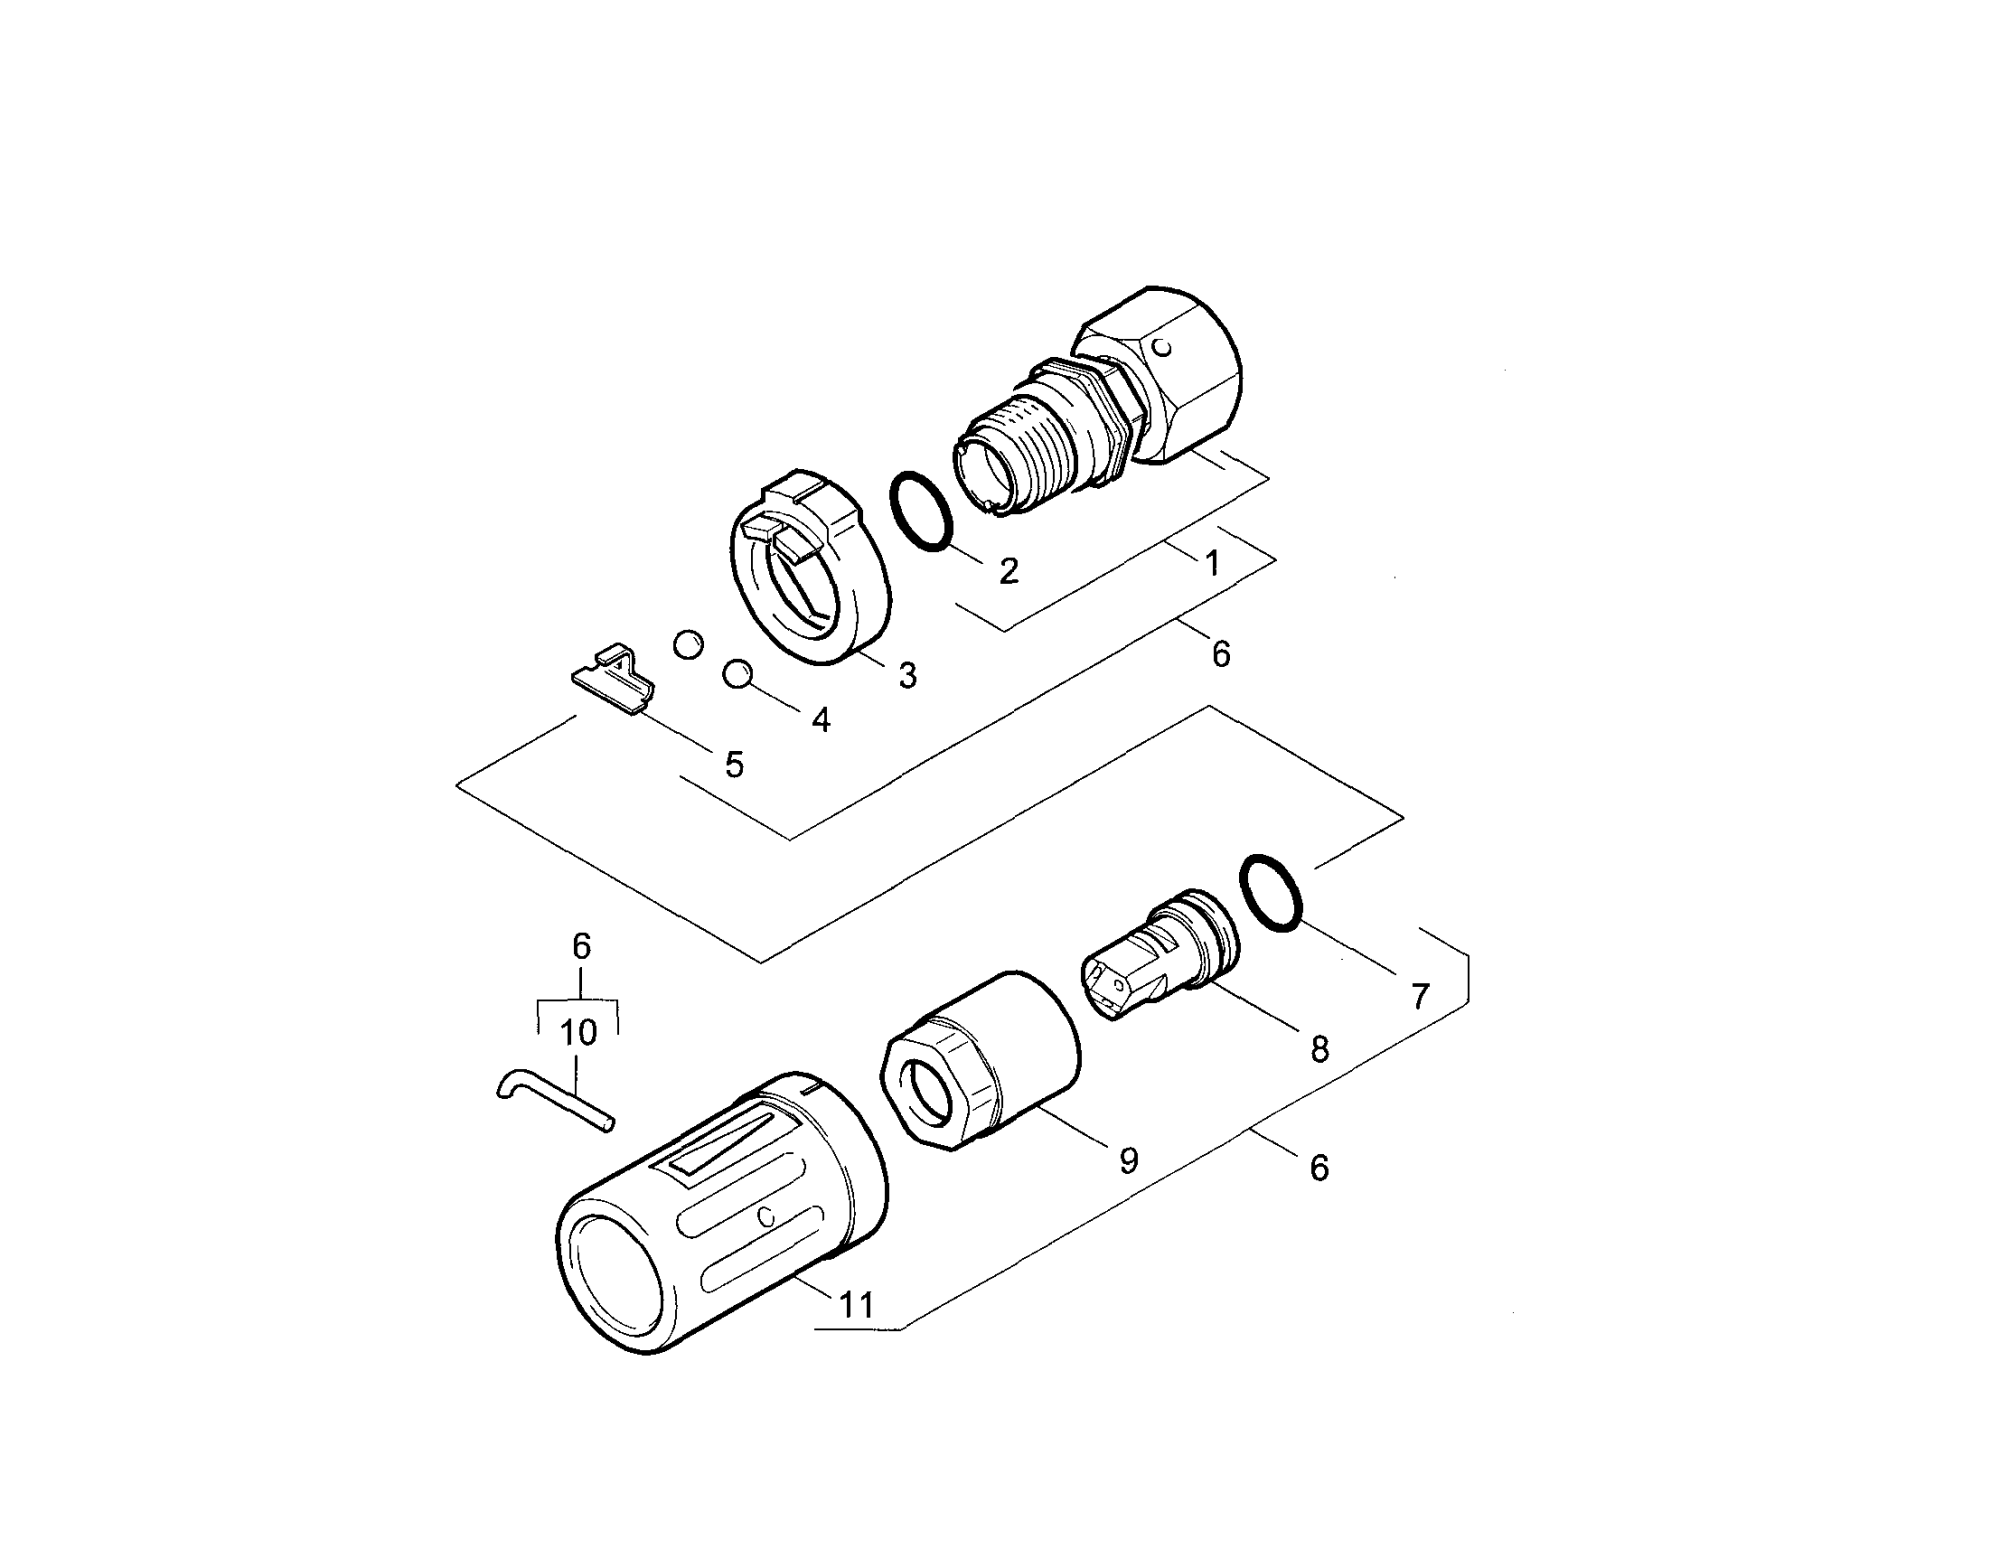 hight resolution of karcher pressure washer nozzle diagram